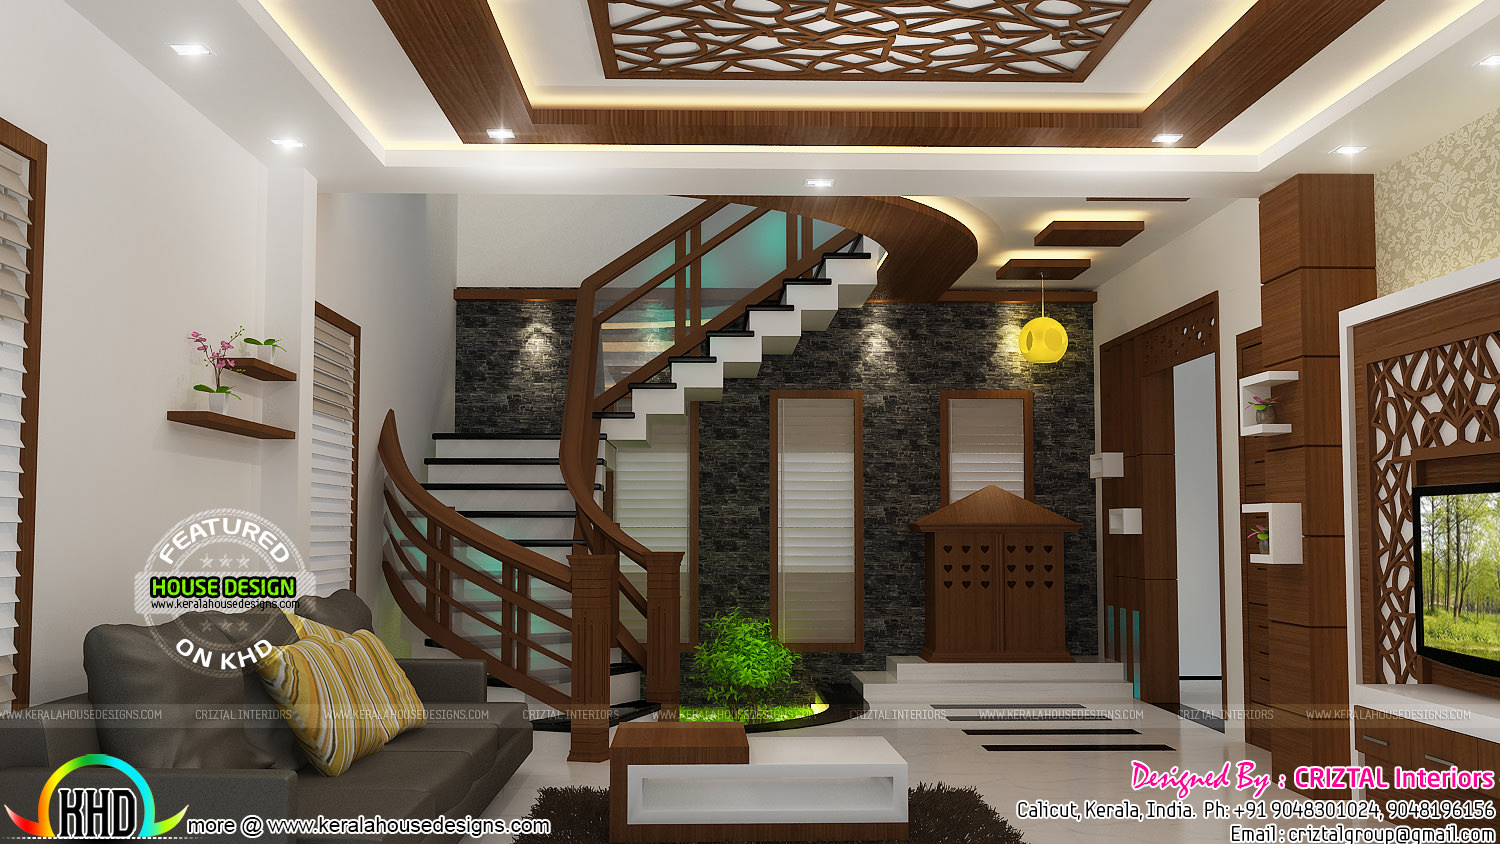 Bedroom Dining Hall And Living Interior Kerala Home Design And Floor Plans